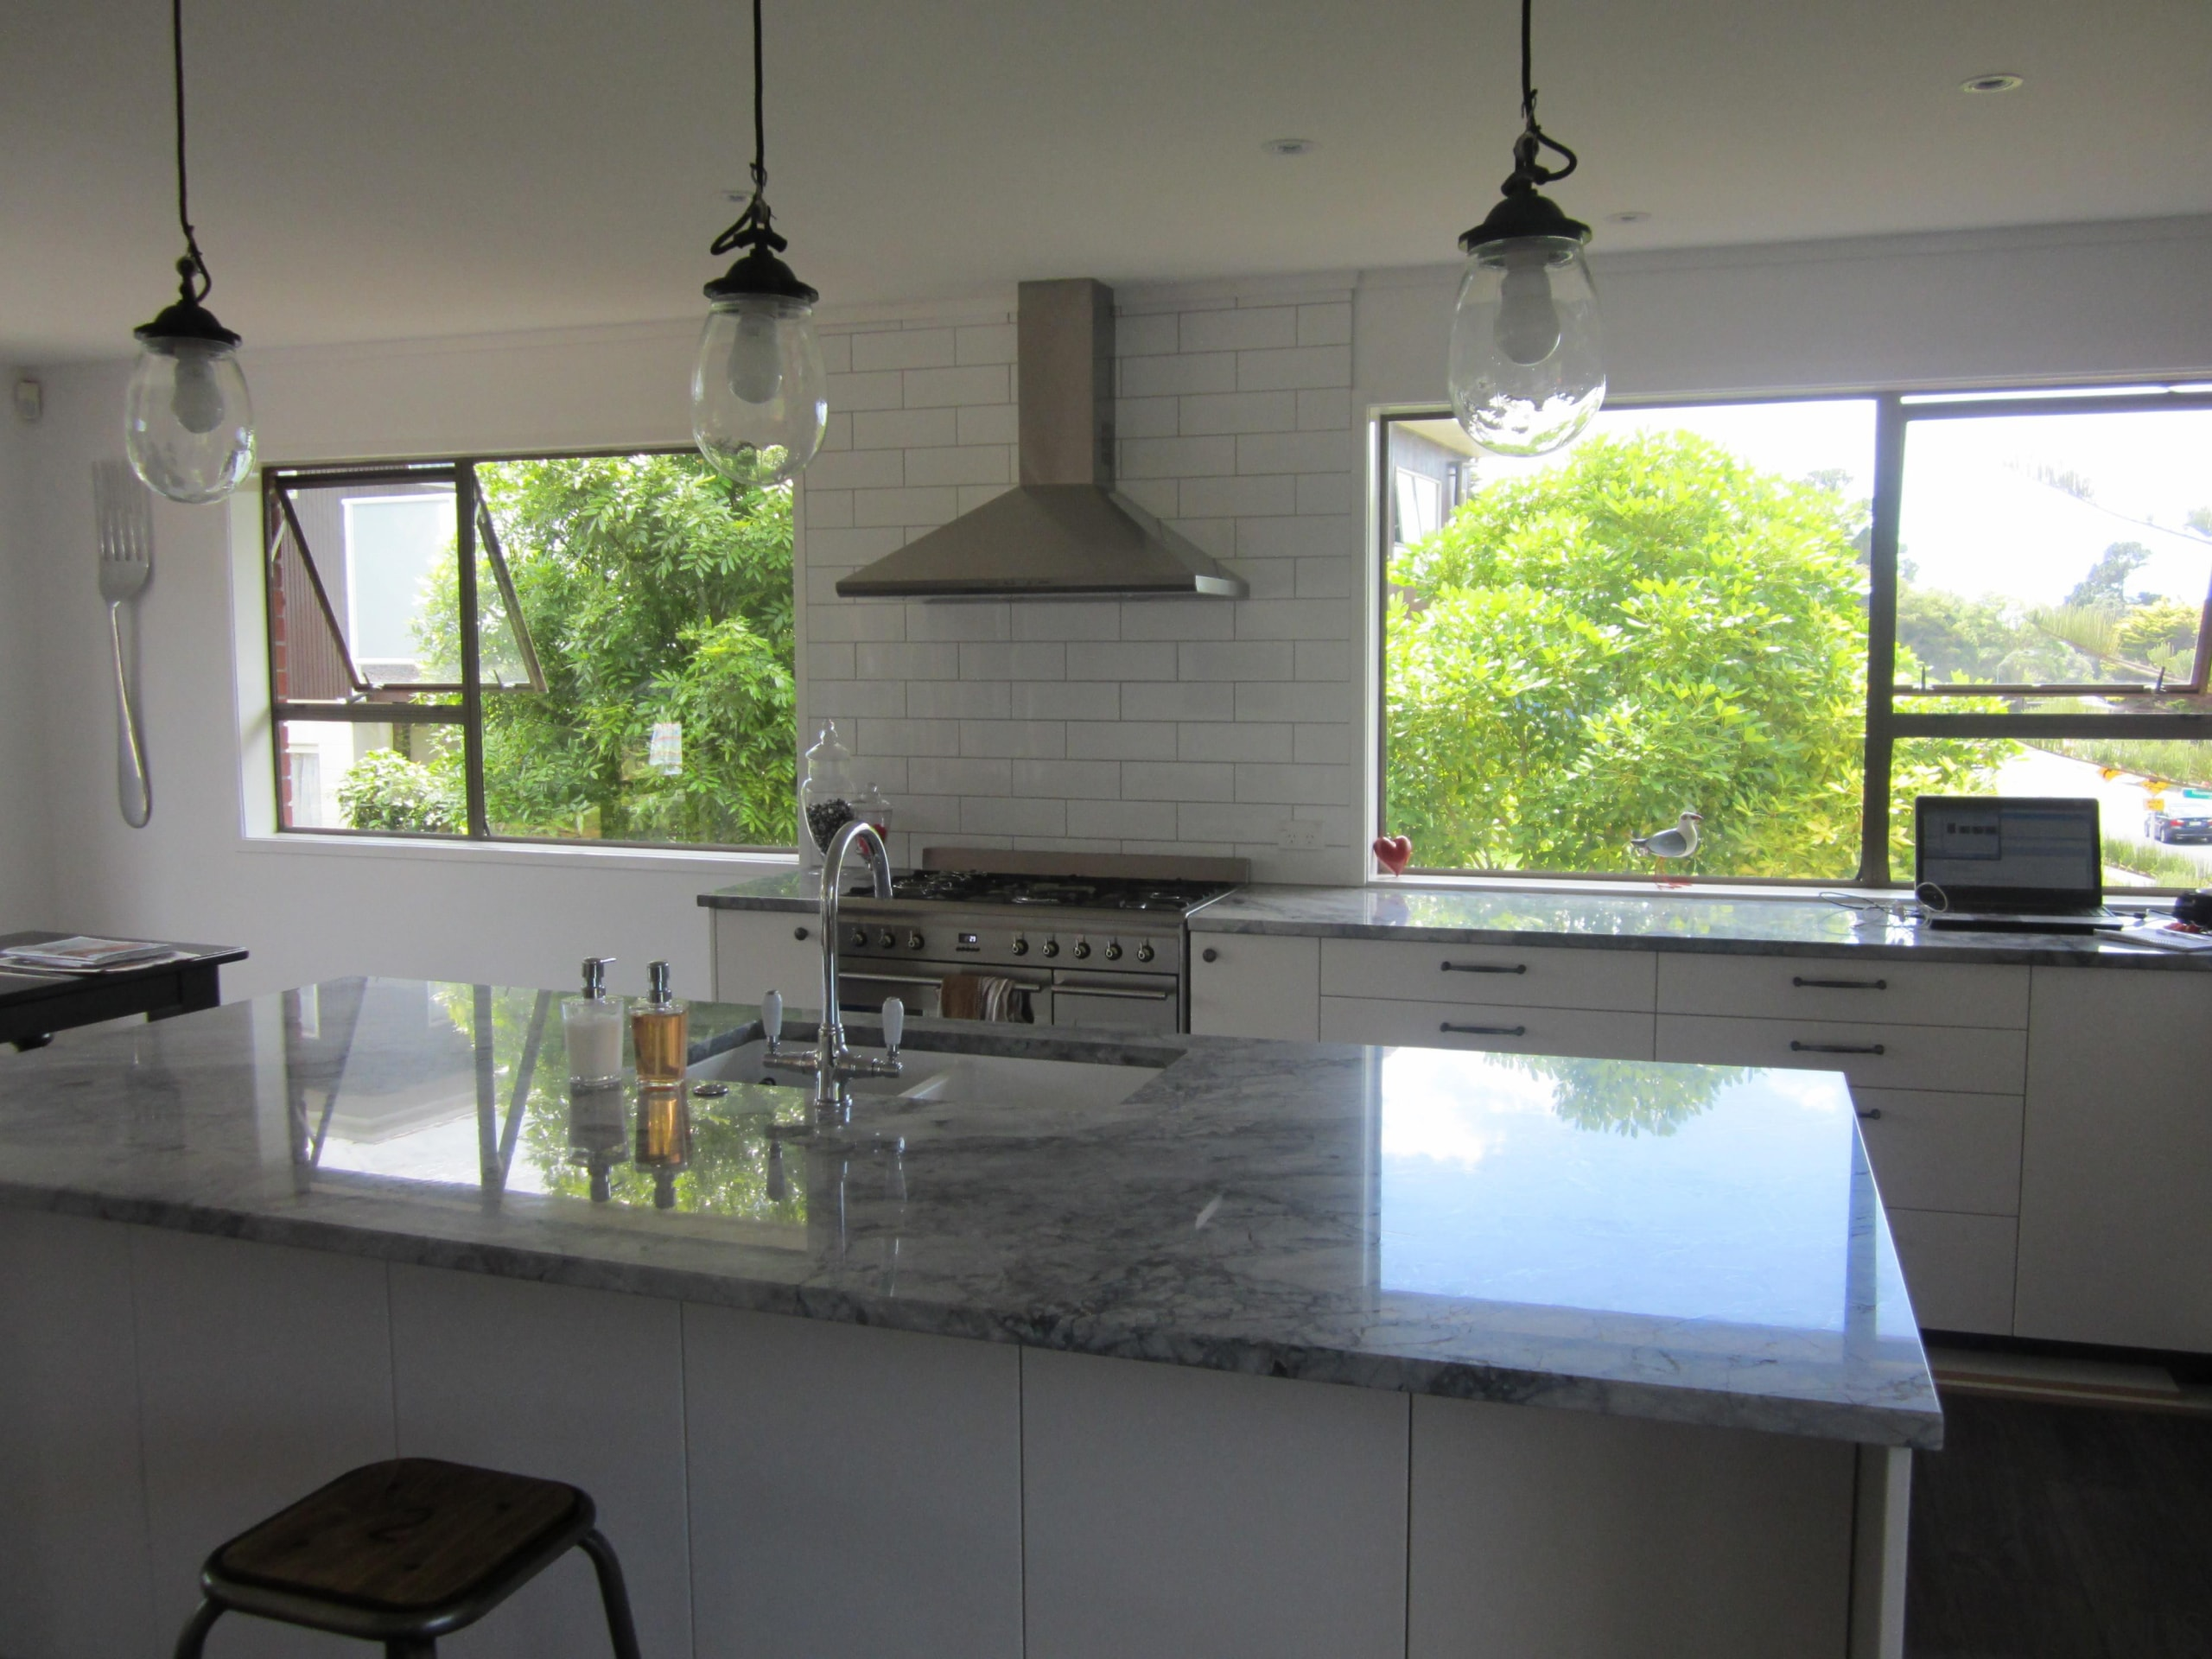 This kitchen renovation features a freestanding oven and countertop, glass, home, interior design, kitchen, real estate, room, window, gray, black